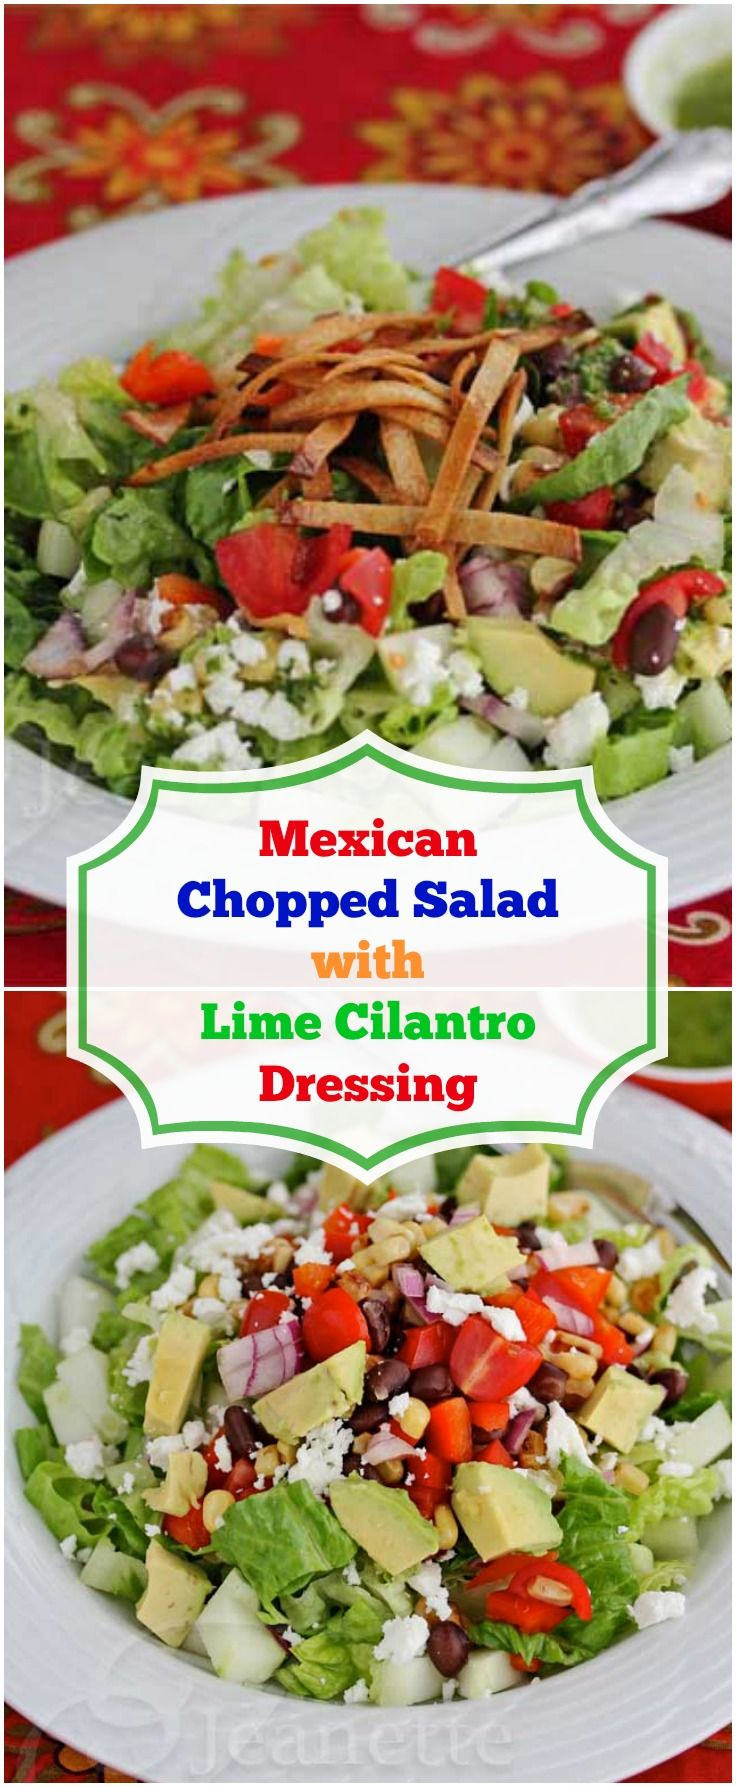 Mexican Chopped Salad with Lime Cilantro Dressing - Jeanette's Healthy Living